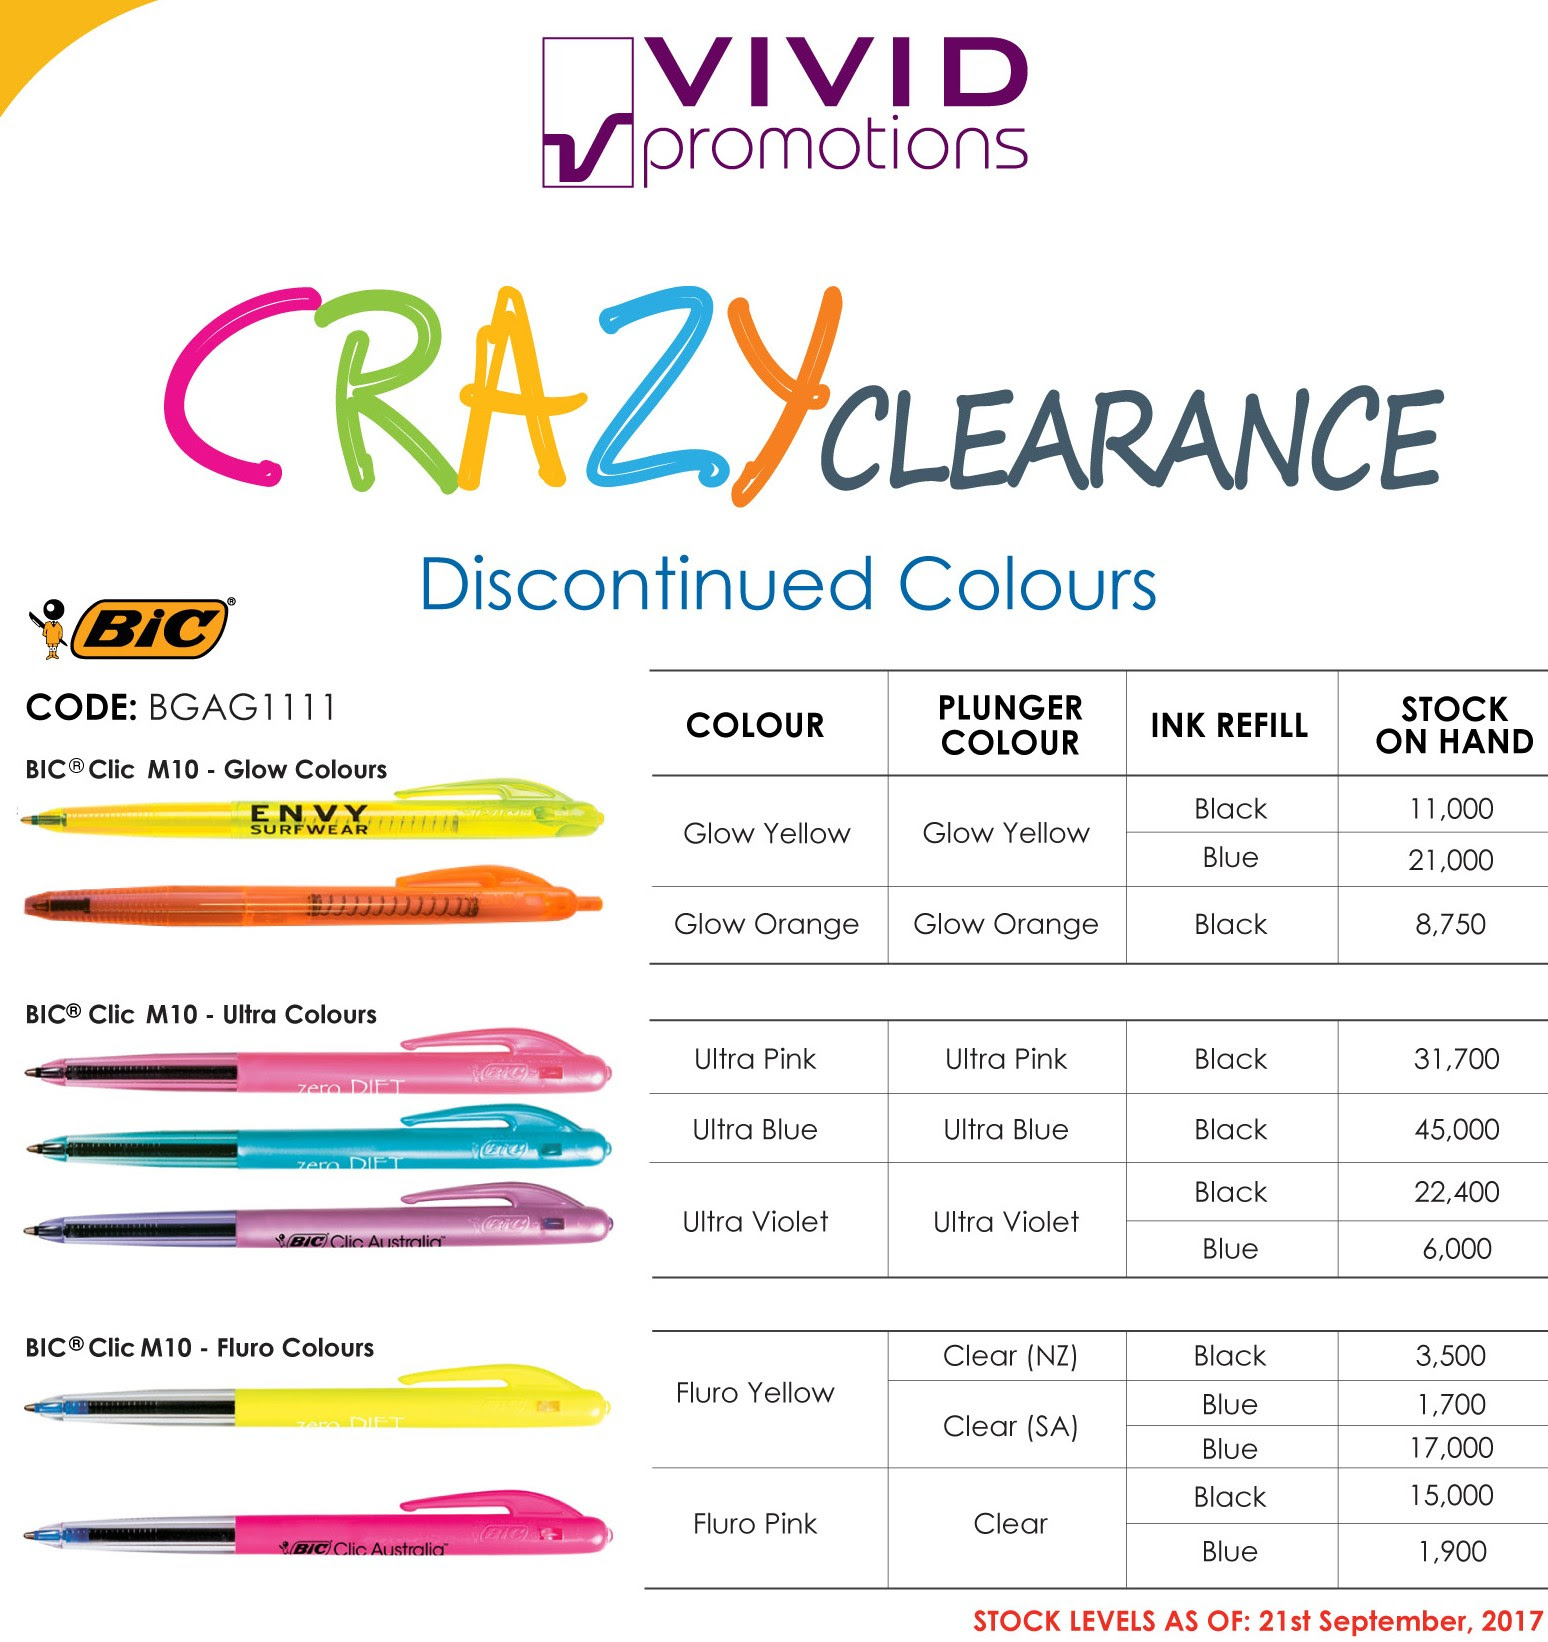 2  Cheap Priced Promotional Products | Vivid Promotions Blog